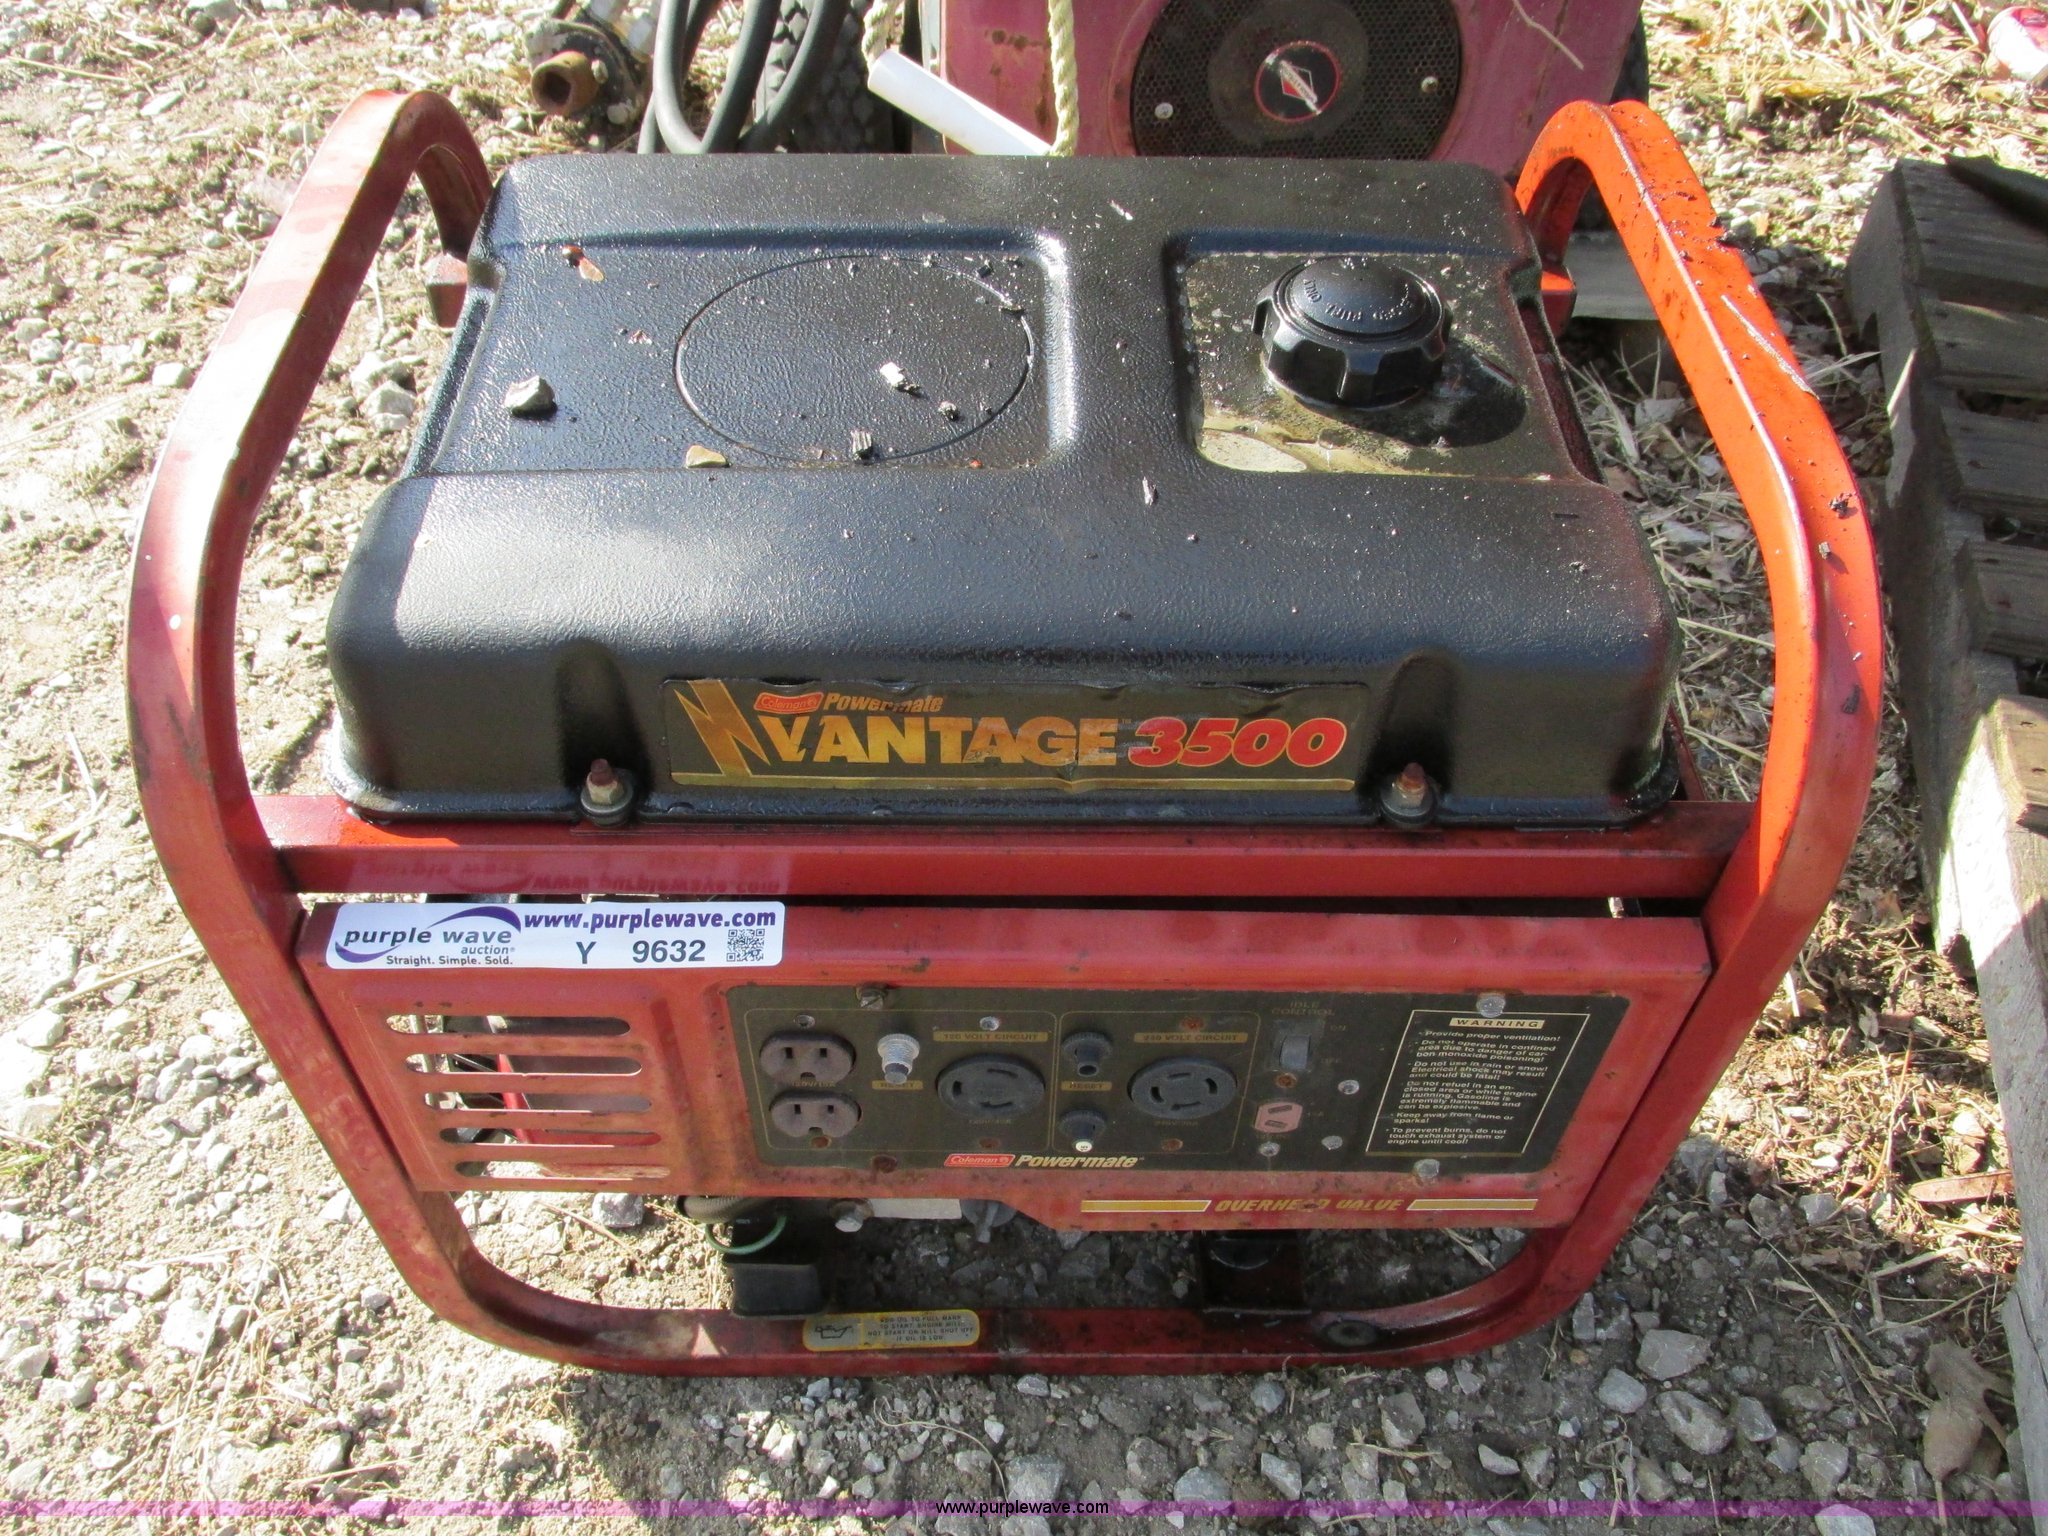 Find more coleman powermate vantage 3500 generator for sale at up.